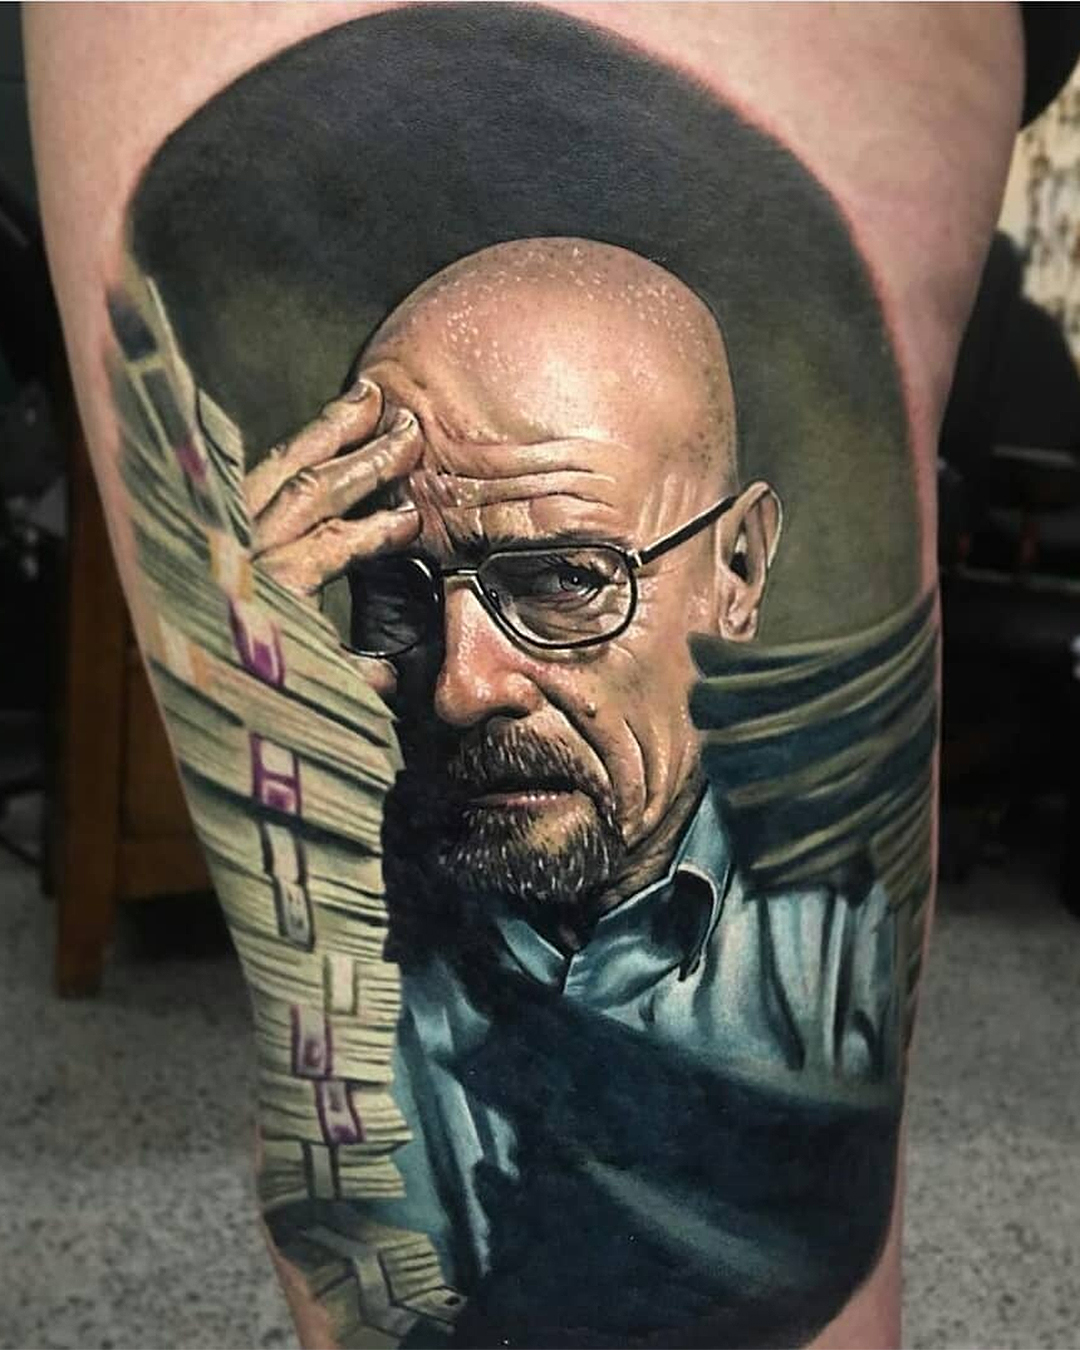 An incredibly realistic portrait of Heisenberg.